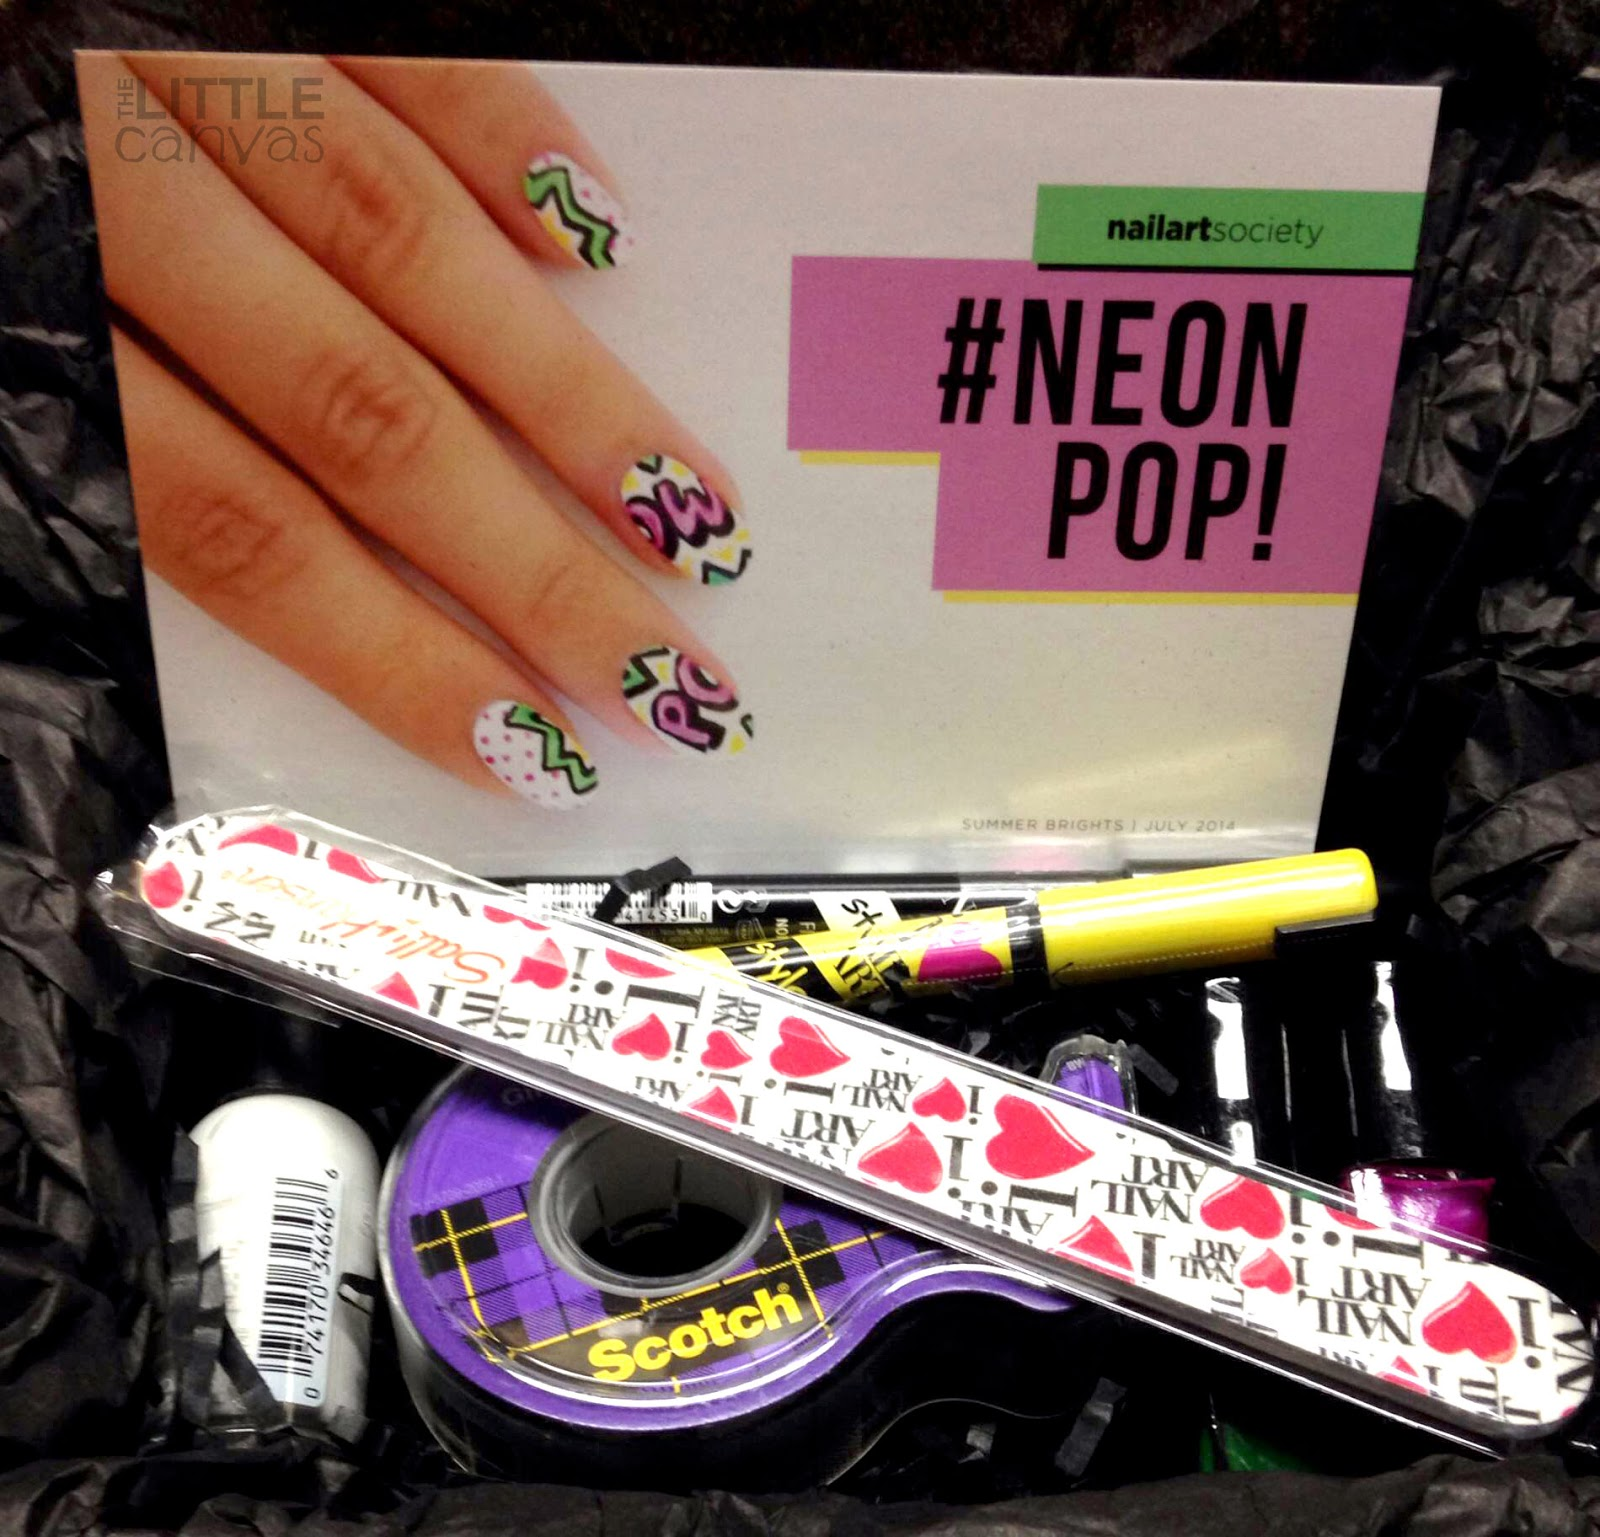 Nail Art Society: #NeonPop Kit Review - The Little Canvas